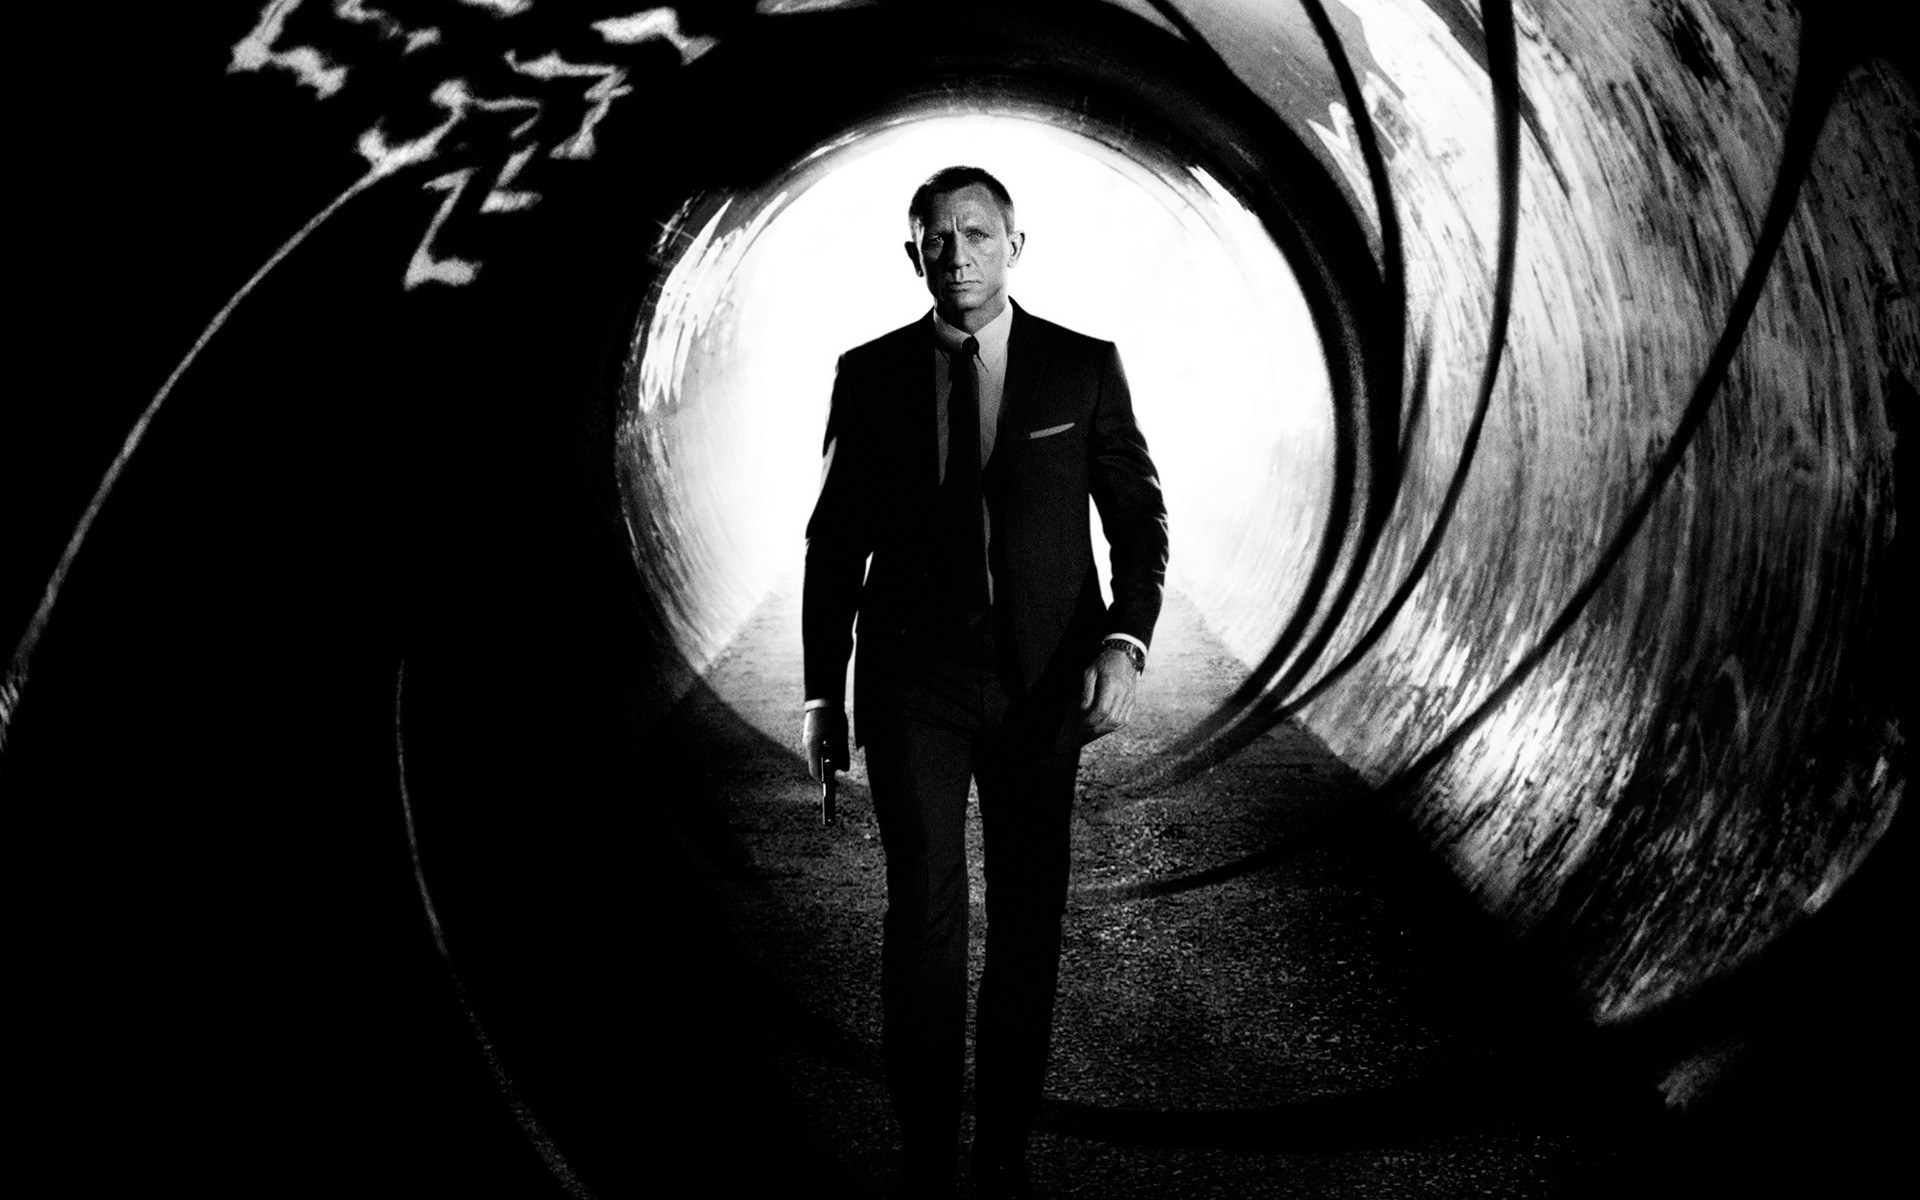 James Bond Wallpaper 30182 1920x1200px 1920x1200